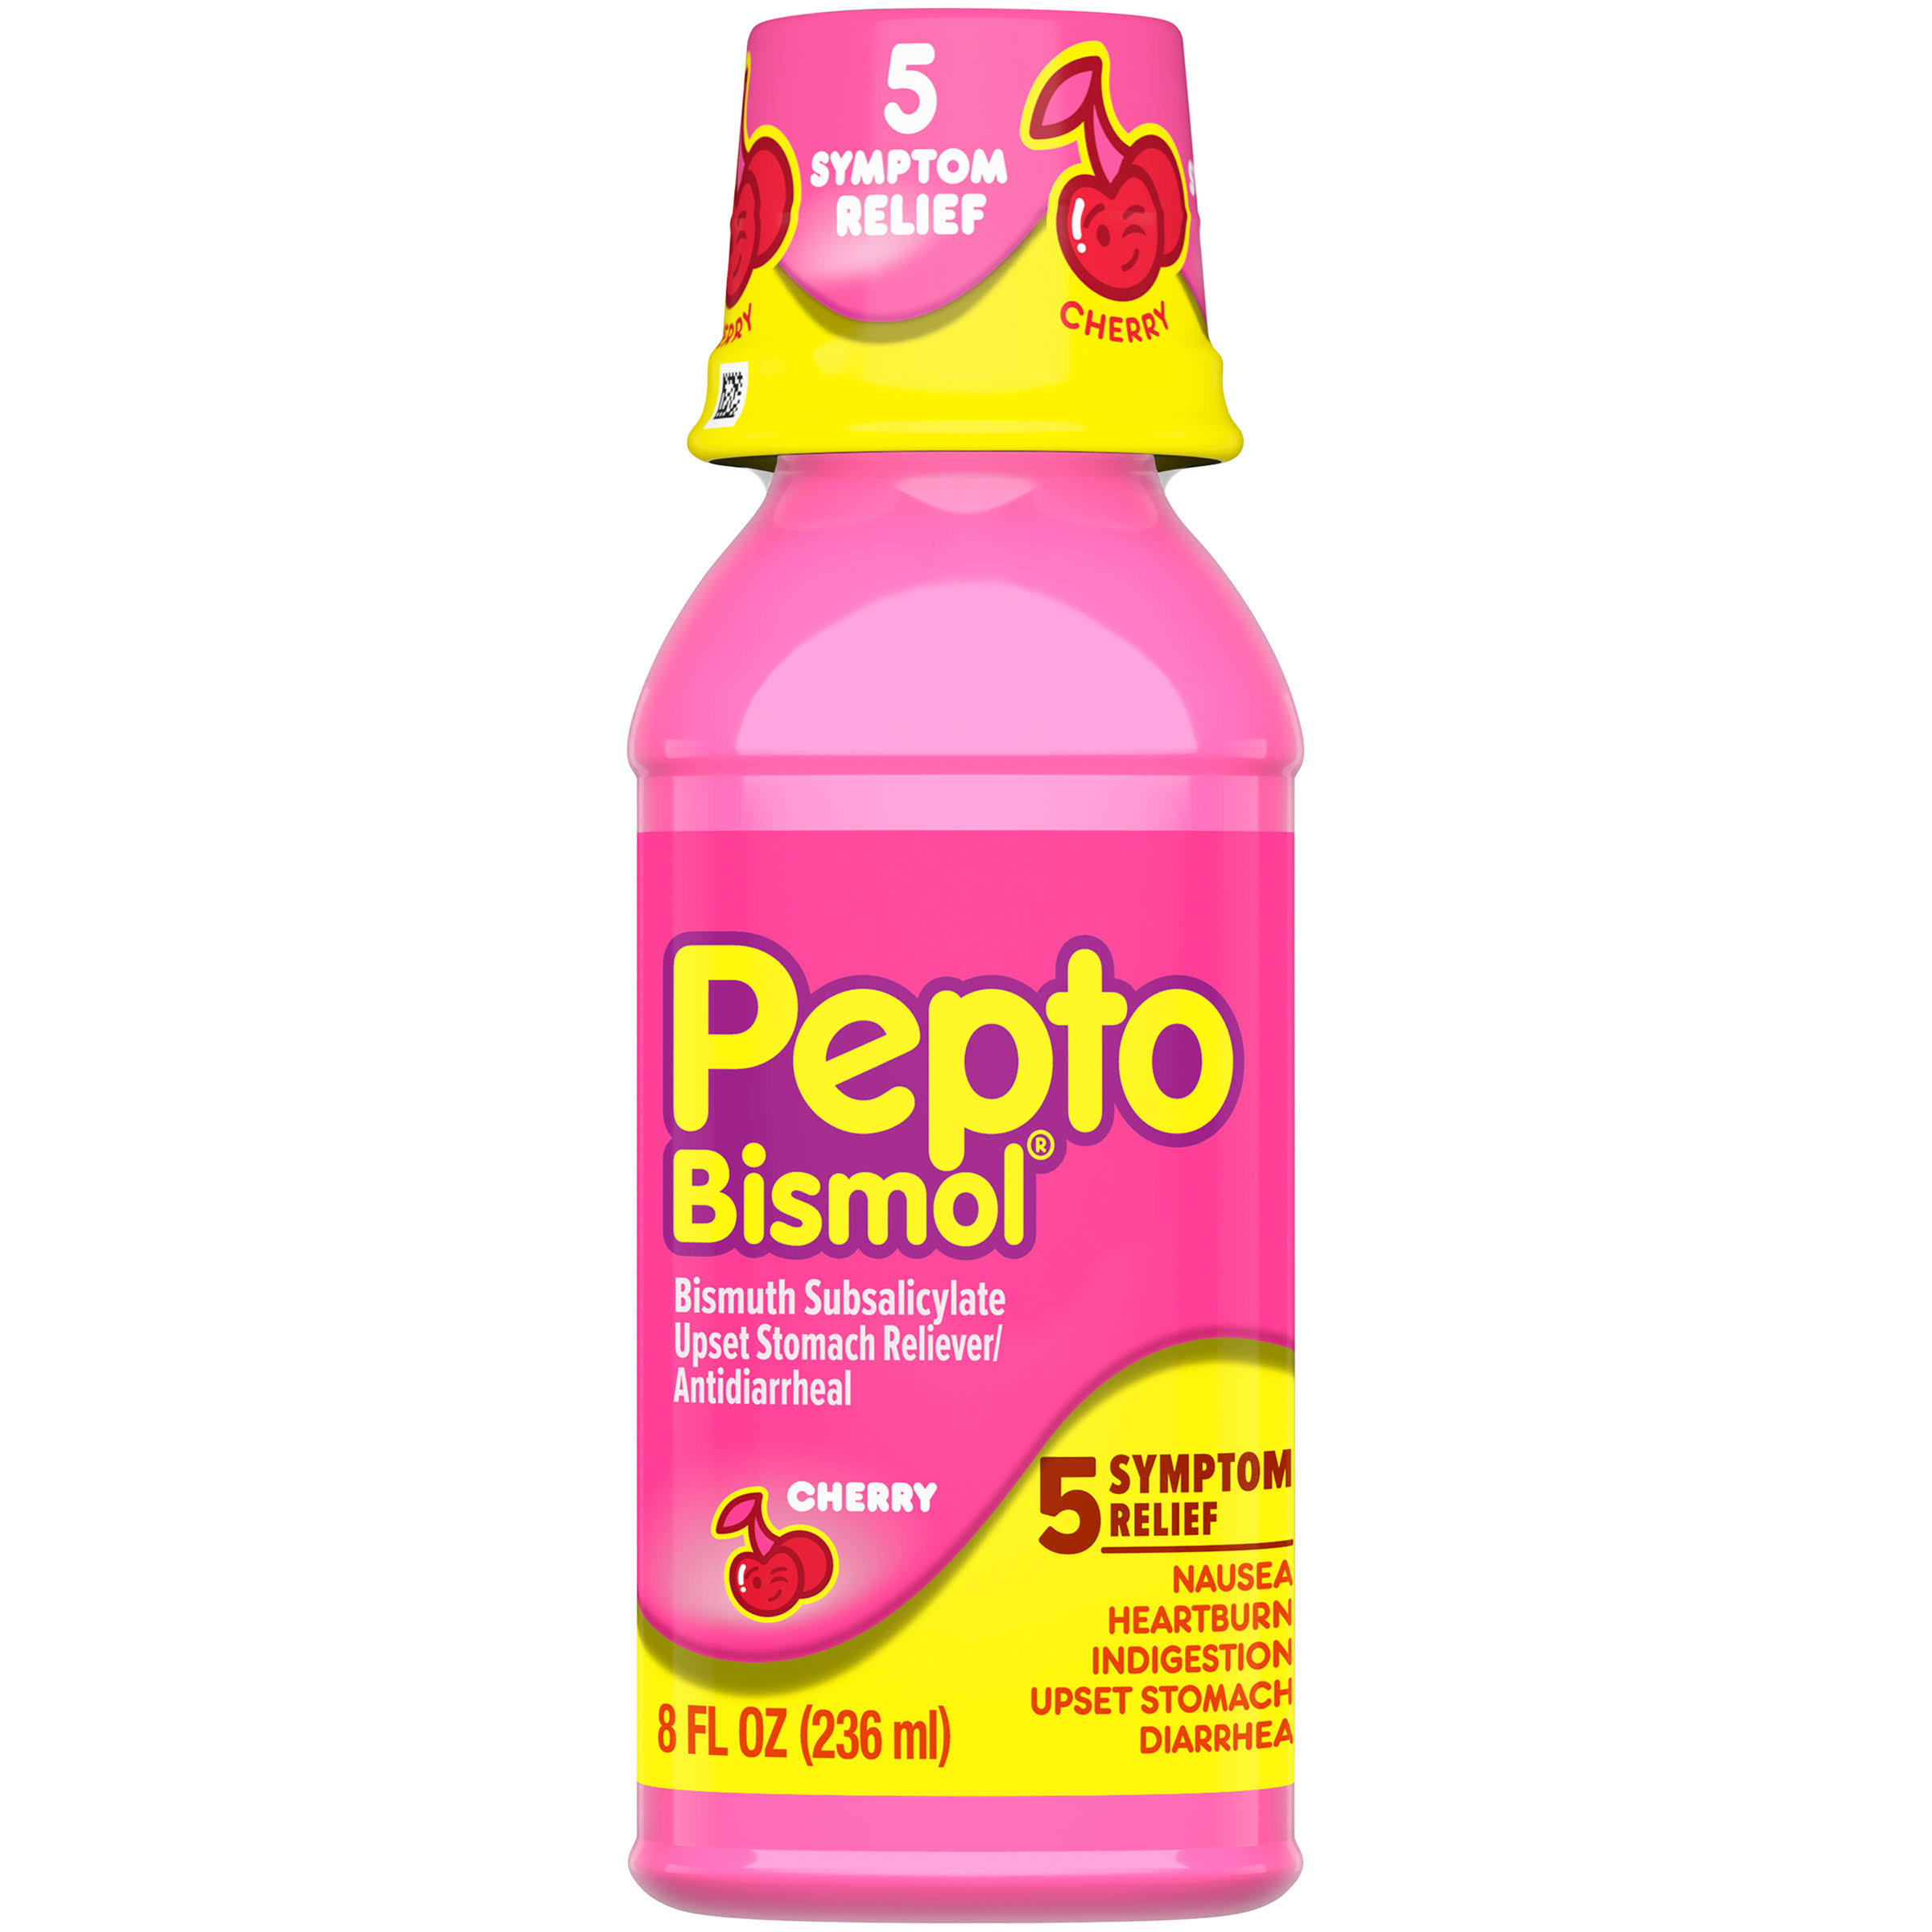 Pepto Bismol Cherry Bismuth Subsalicylate Antidiarrheal Upset Stomach Reliever - 8oz